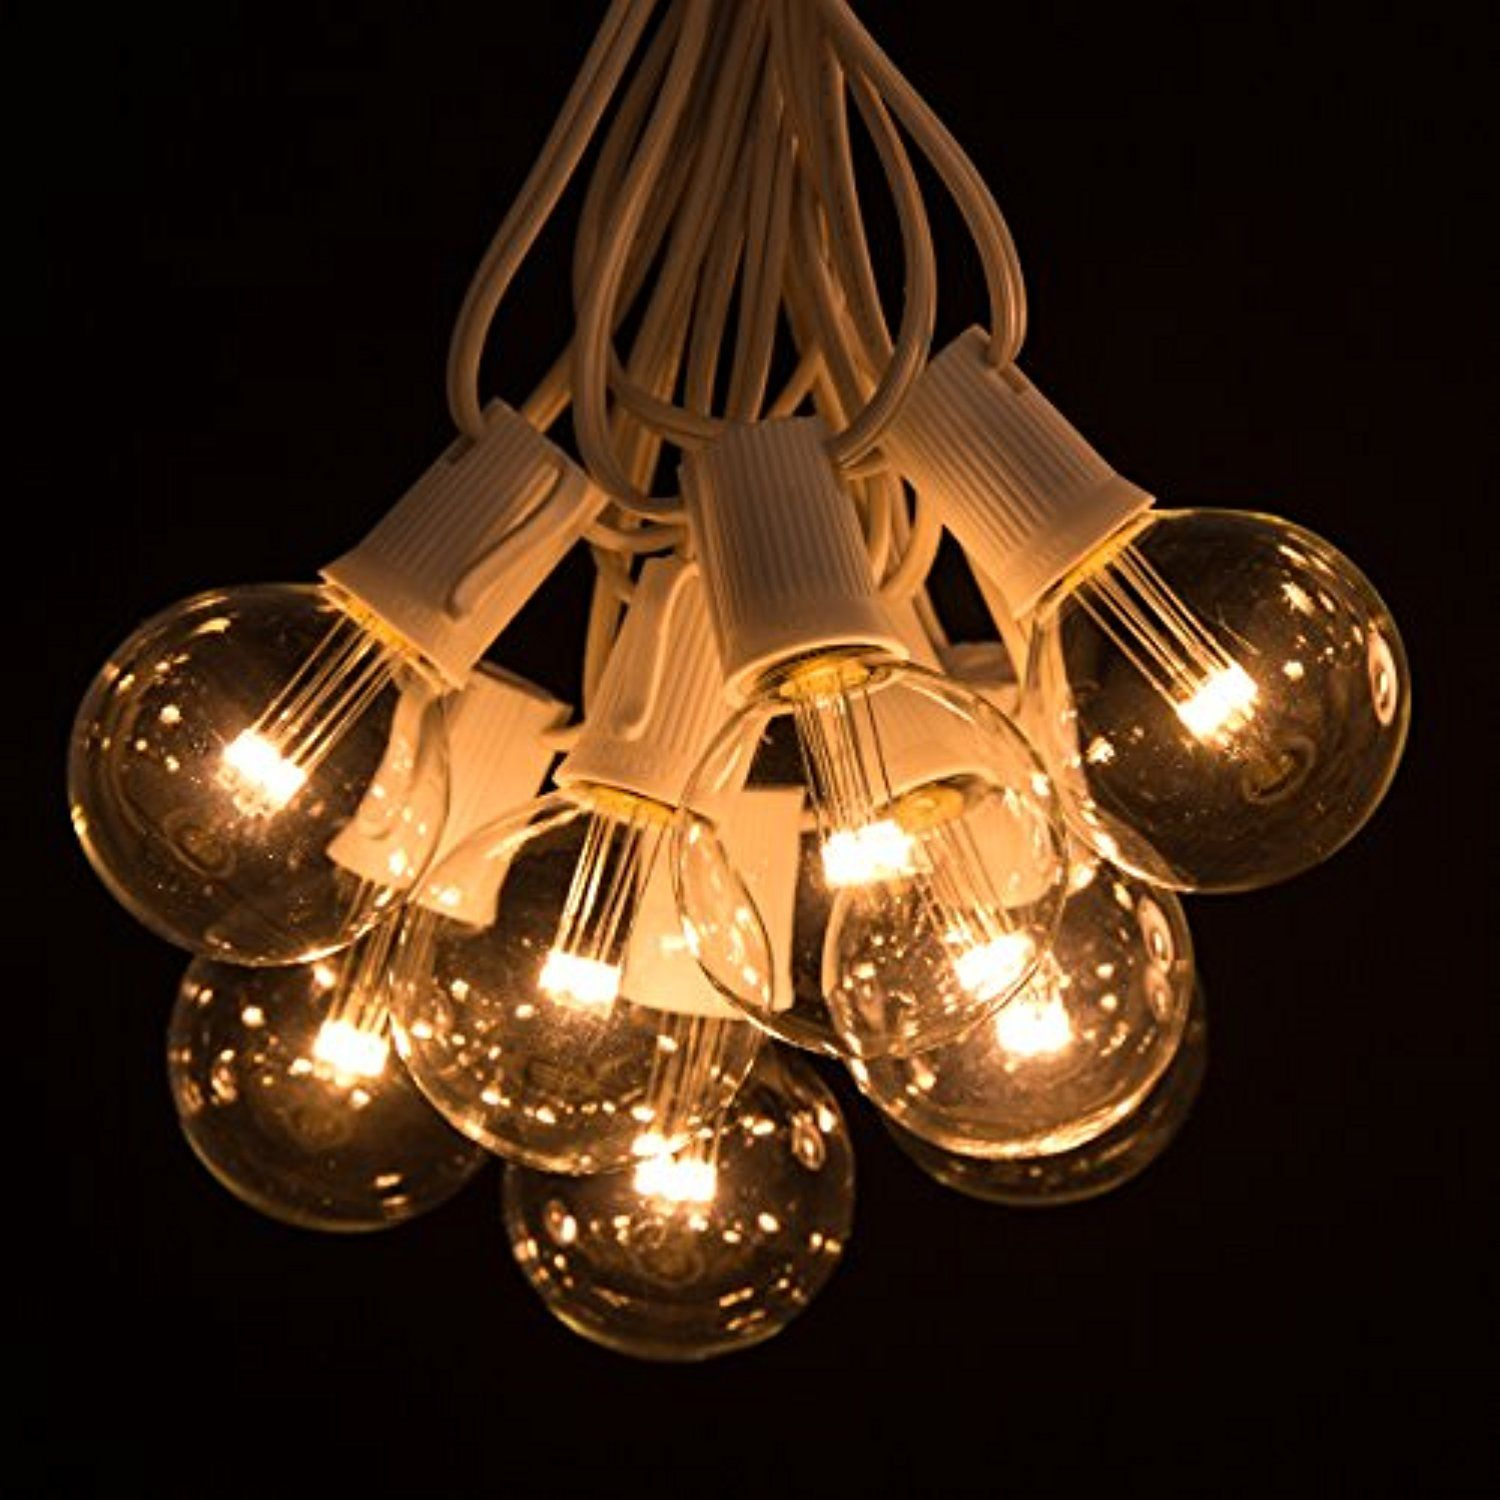 """25 Foot LED Warm White Outdoor Globe Patio String Lights ¢€"""" Set"""